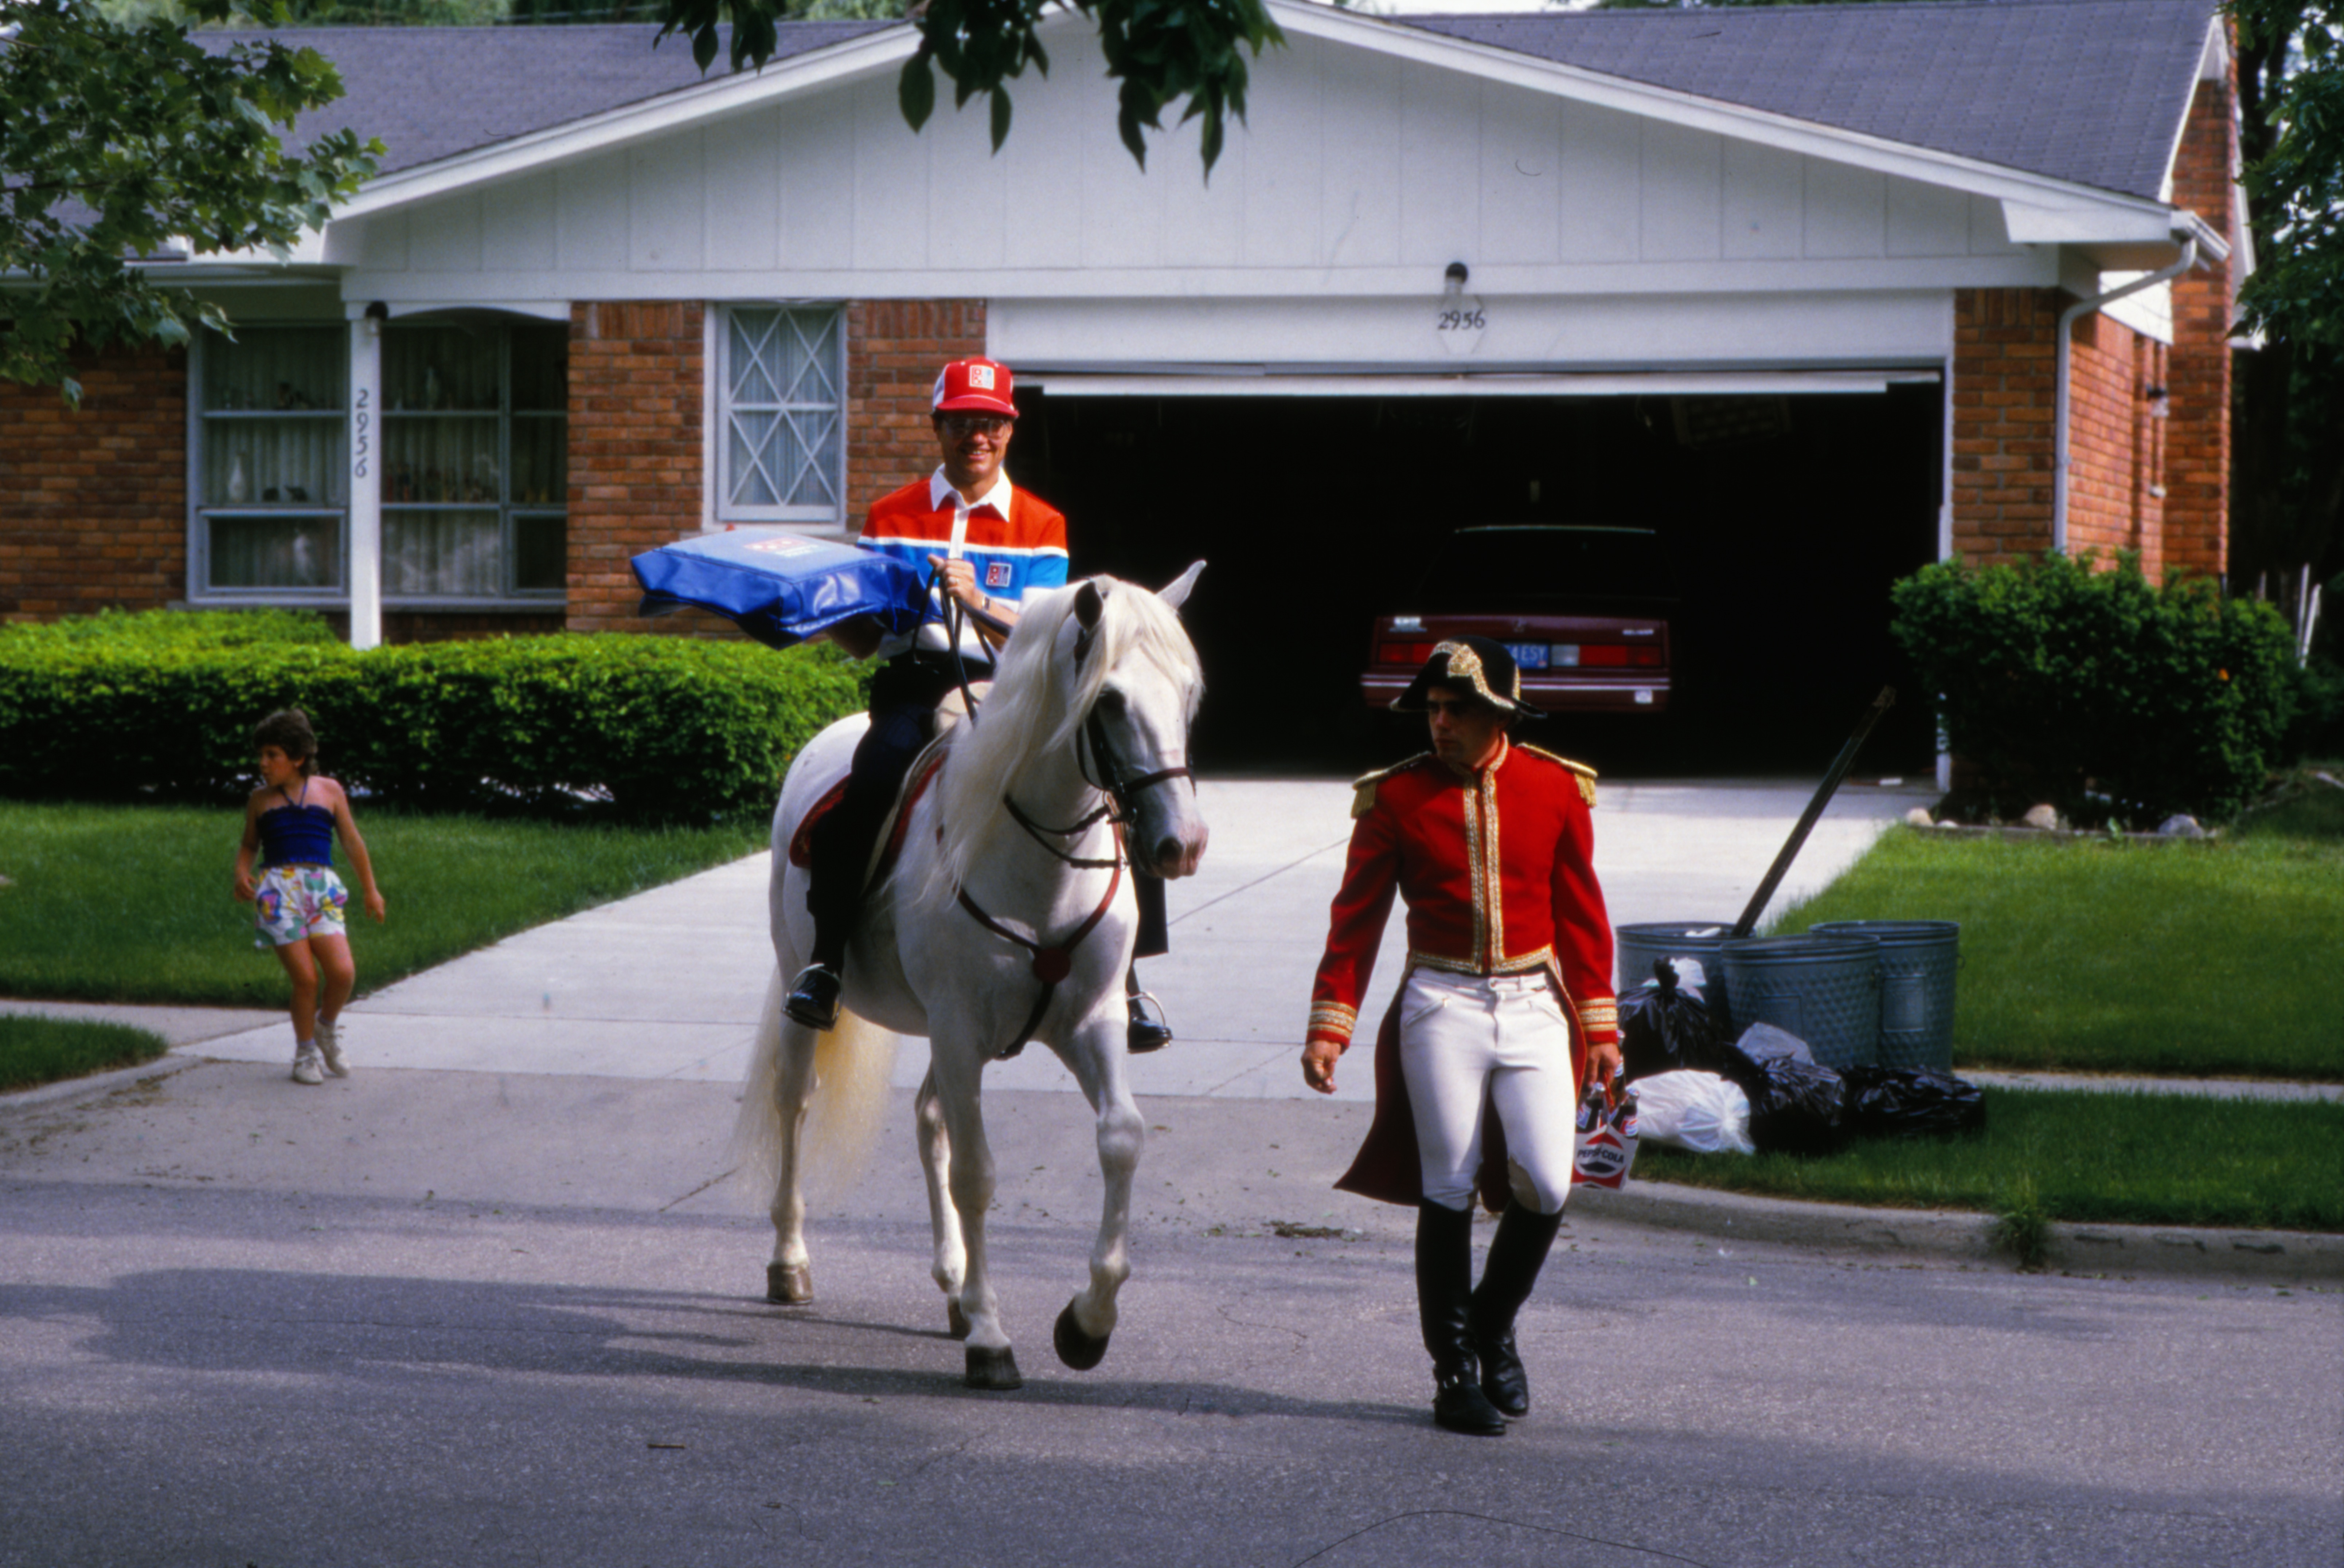 Tom Monaghan Delivers Pizza on Horseback image